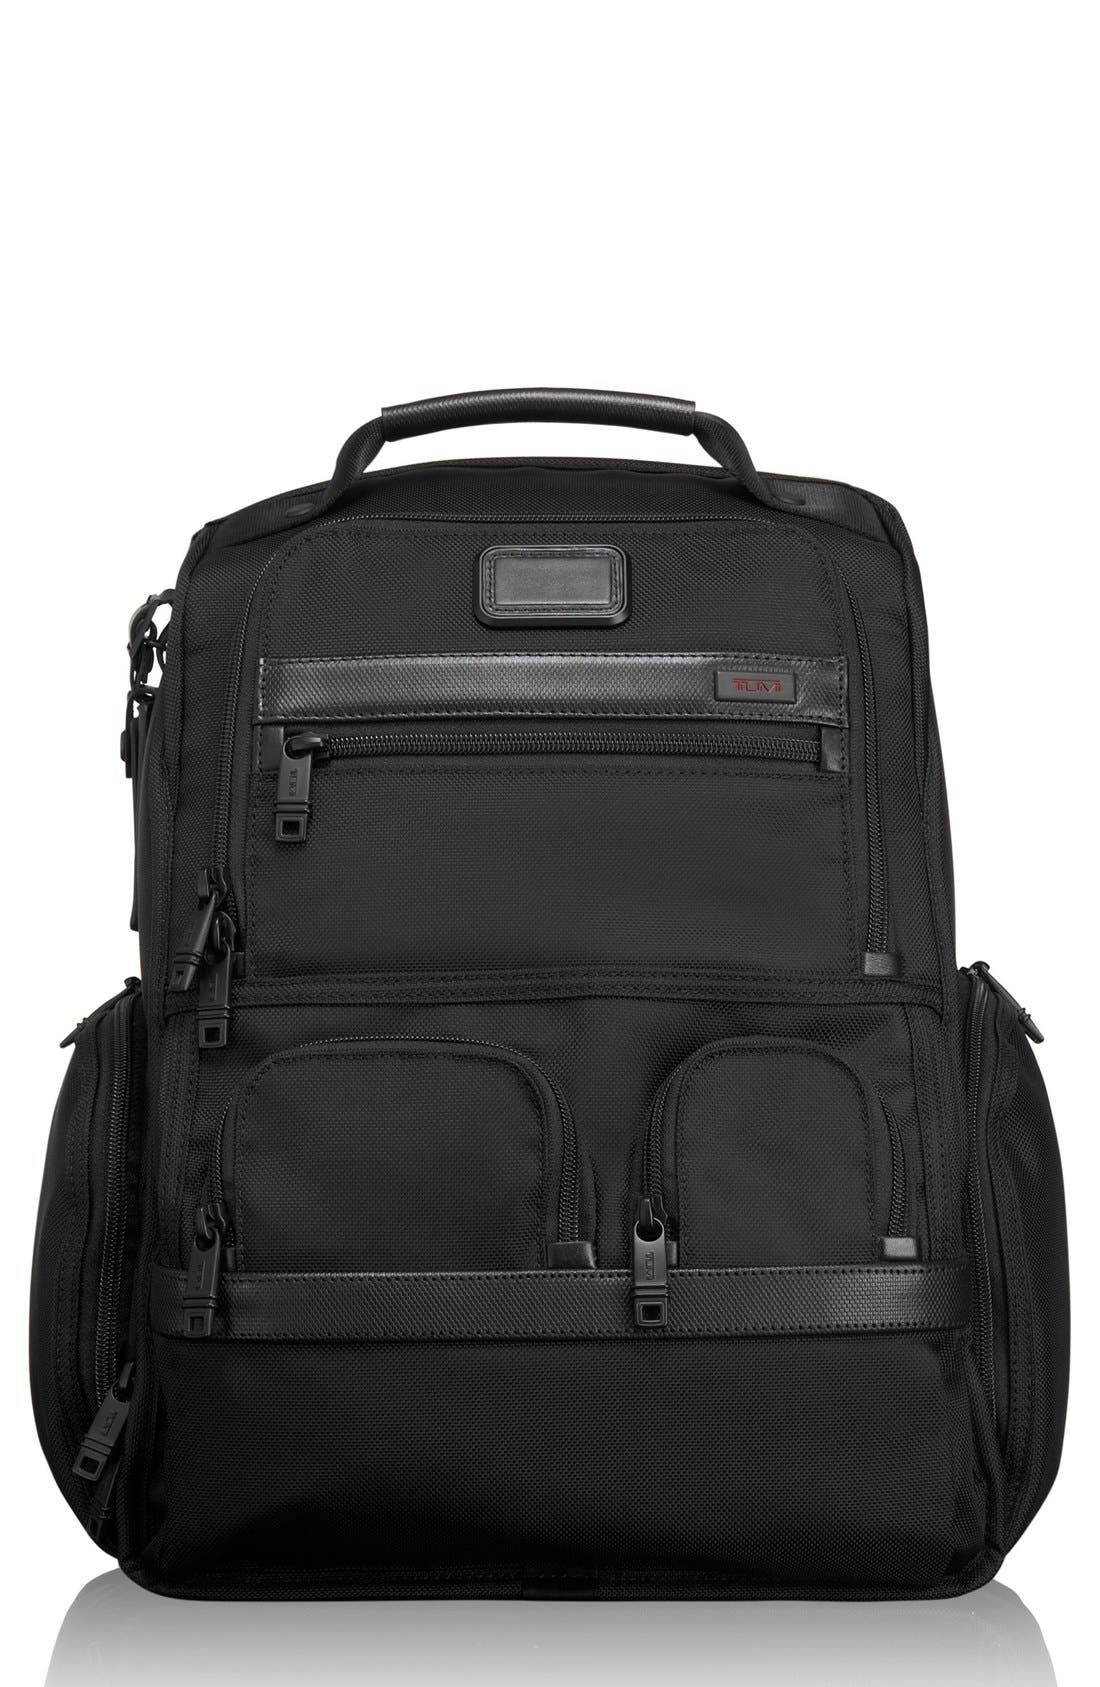 Alternate Image 1 Selected - Tumi Alpha 2 Compact Laptop Brief Pack®